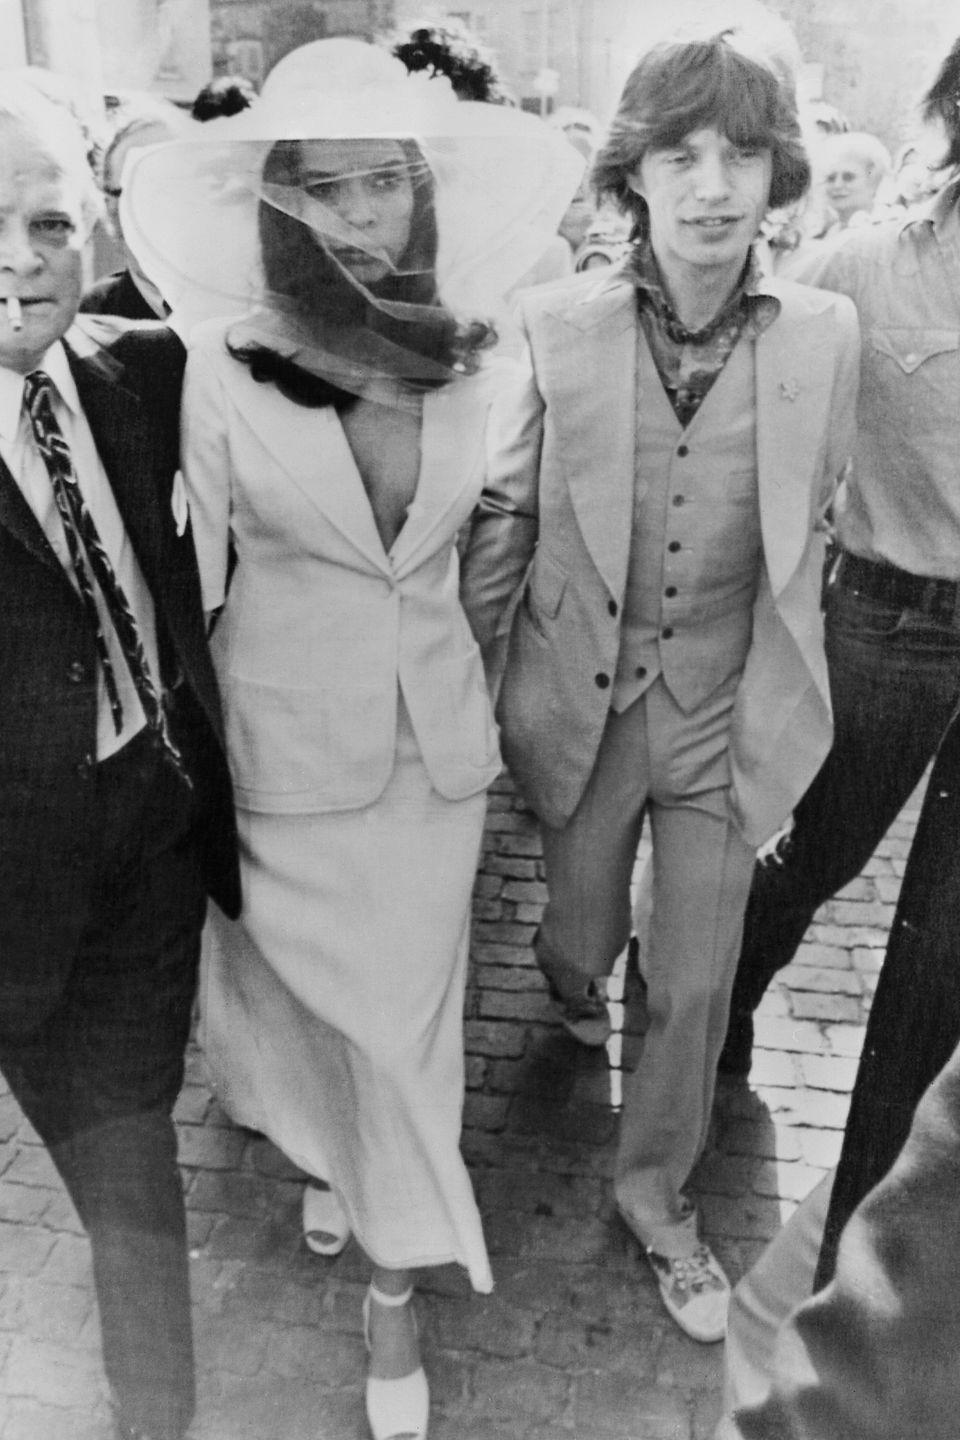 <p>Bianca Jagger wore a chic blazer and hat with a veil for her intimate wedding ceremony to Rolling Stones singer Mick Jagger in Saint Tropez's City Hall. </p>